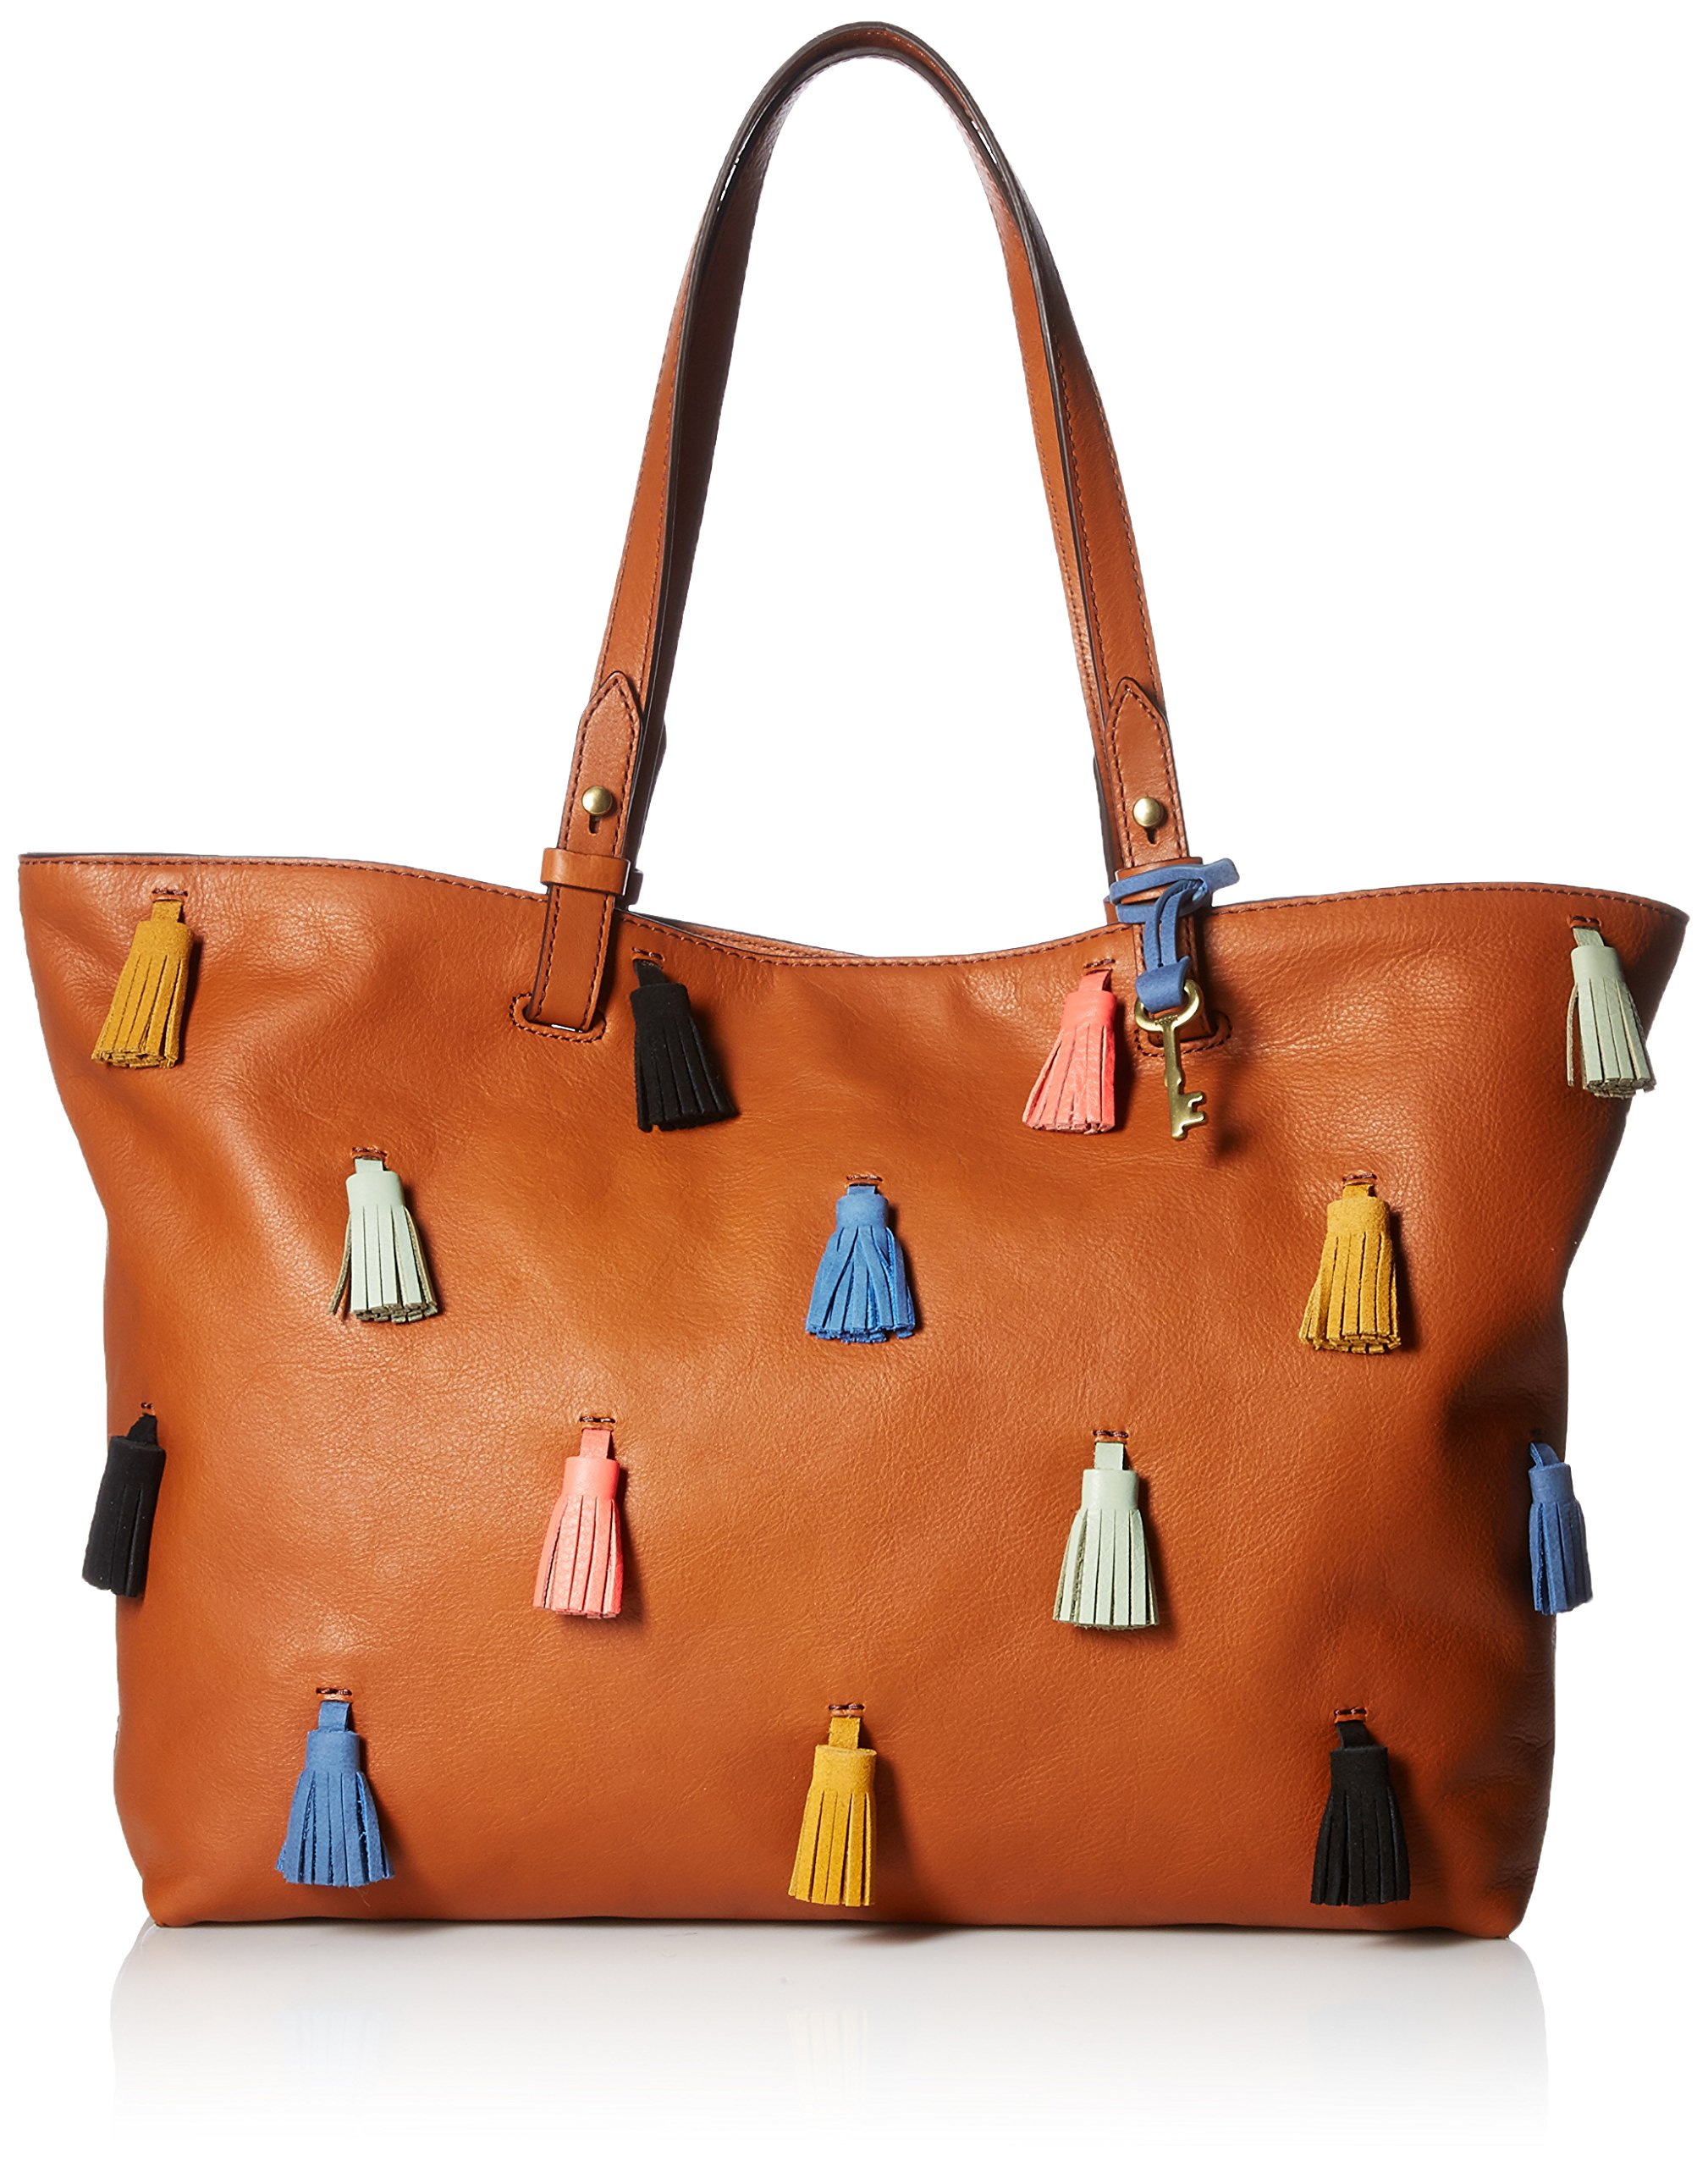 Fossil Rachel Tote, Brown/Multi, One Size